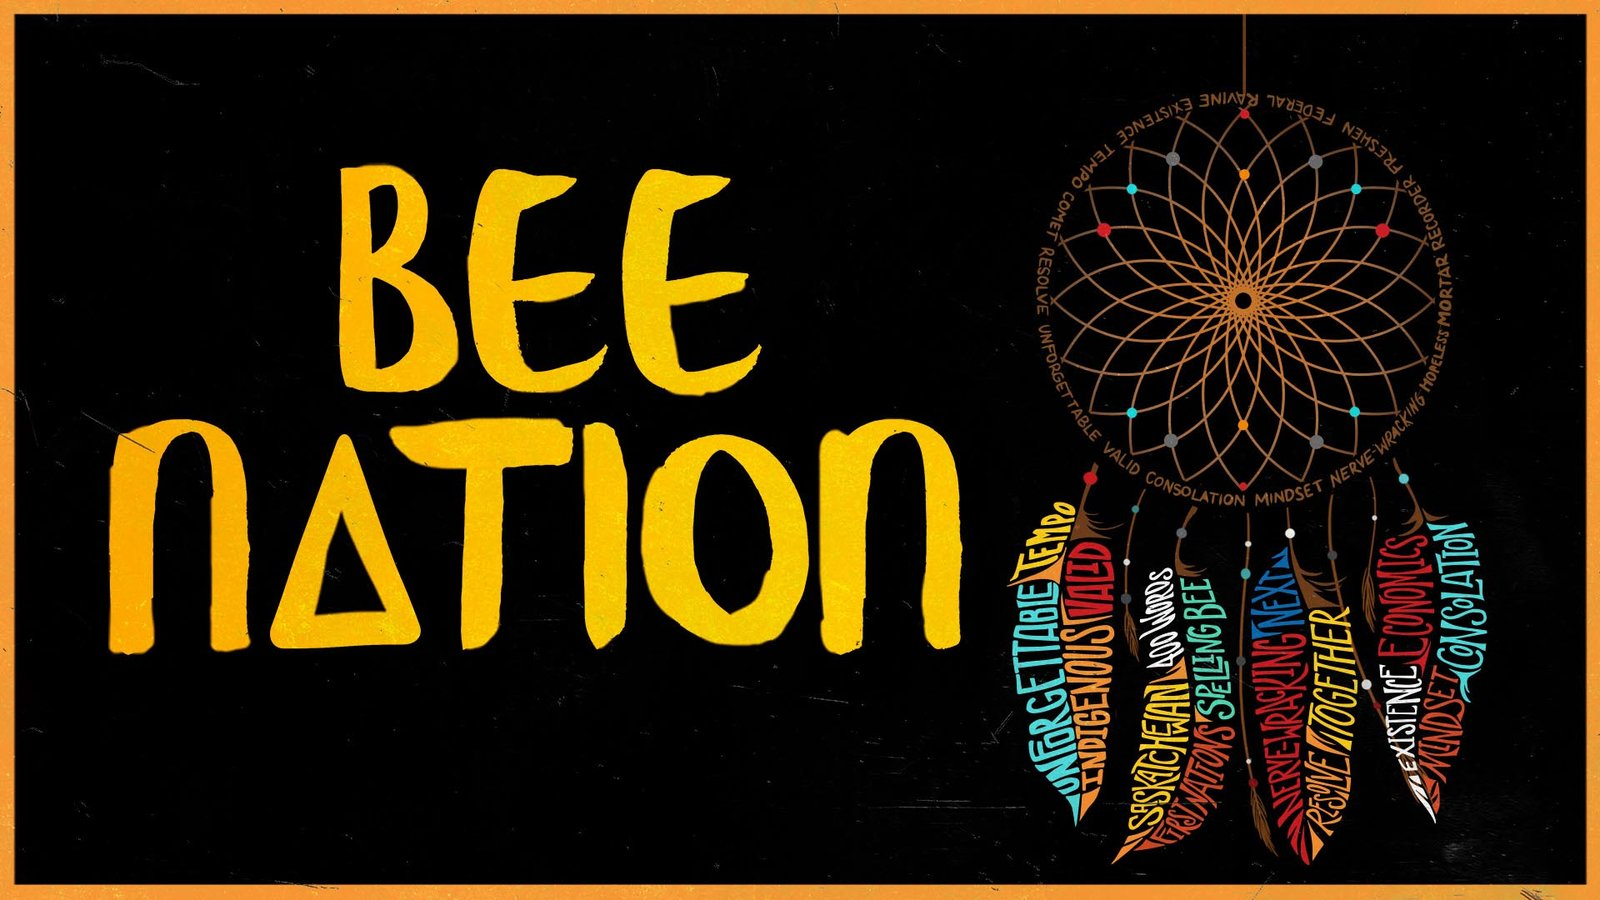 Bee Nation